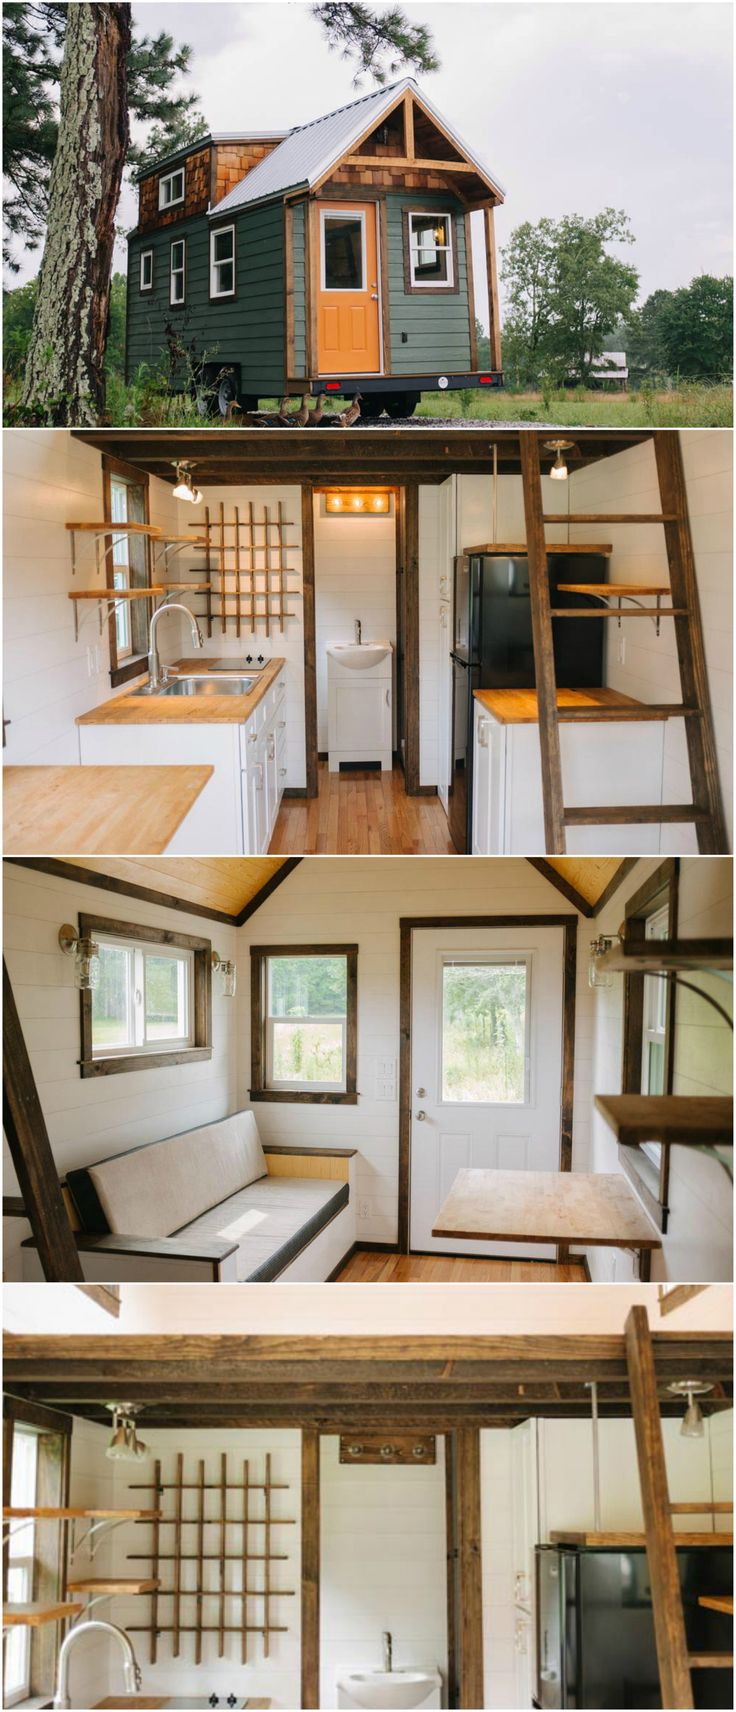 The Acadia is an amazing tiny house built by Wind River Tiny Homes.  The 24′ tiny home features a traditional gable roof, large dormers, and a small front porch. The modern/rustic interior has white shiplap walls and dark wood trim. The flooring and ceiling have natural wood finishes.  The kitchen is equipped with a two burner electric cooktop, apartment size refrigerator, full height pantry, and butcher block counters.